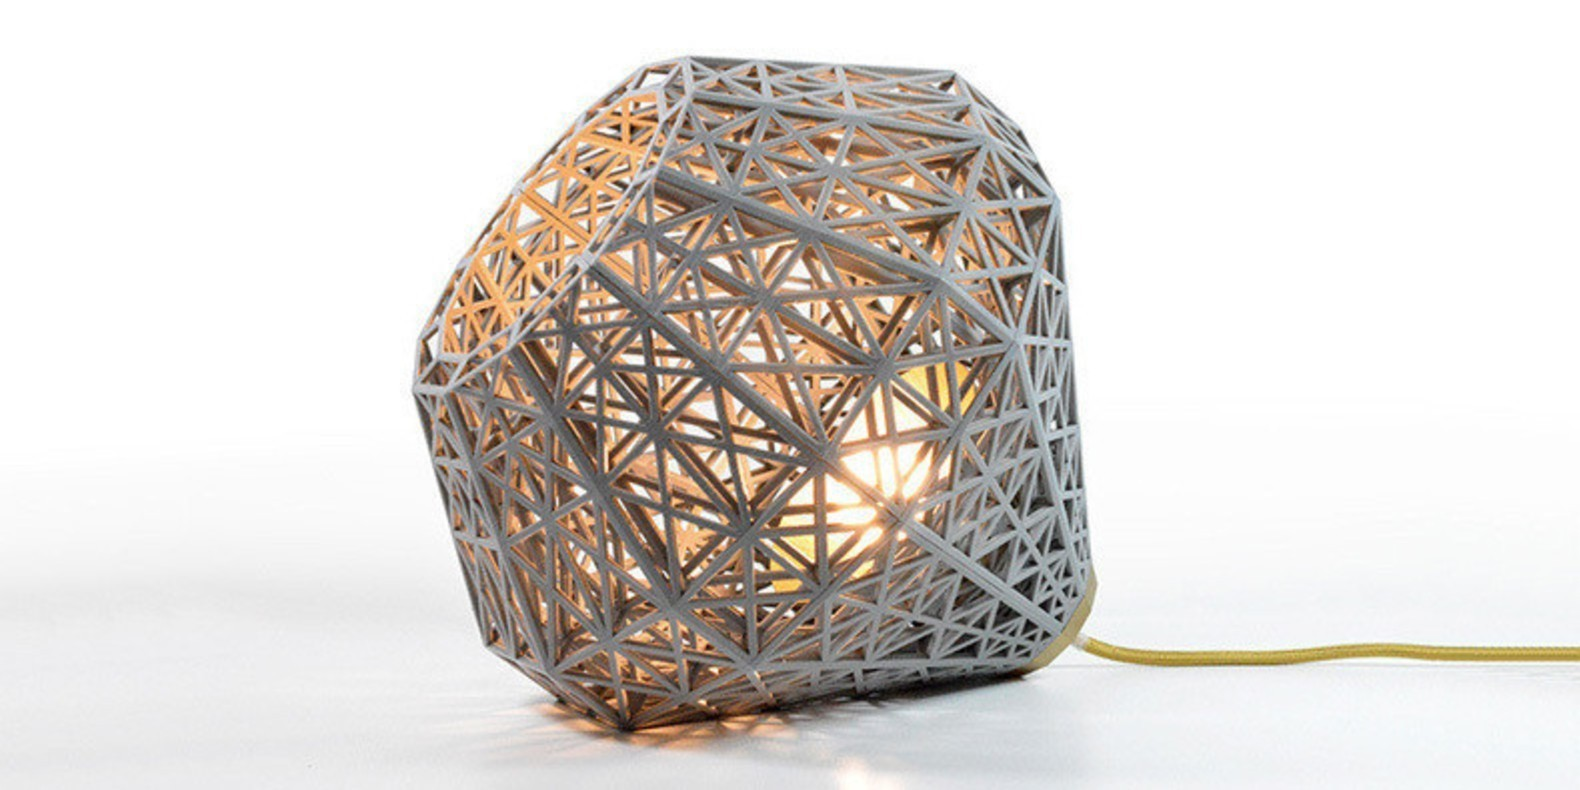 Here is a selection of the best 3D printable STL files for 3D printer to print your own lamps